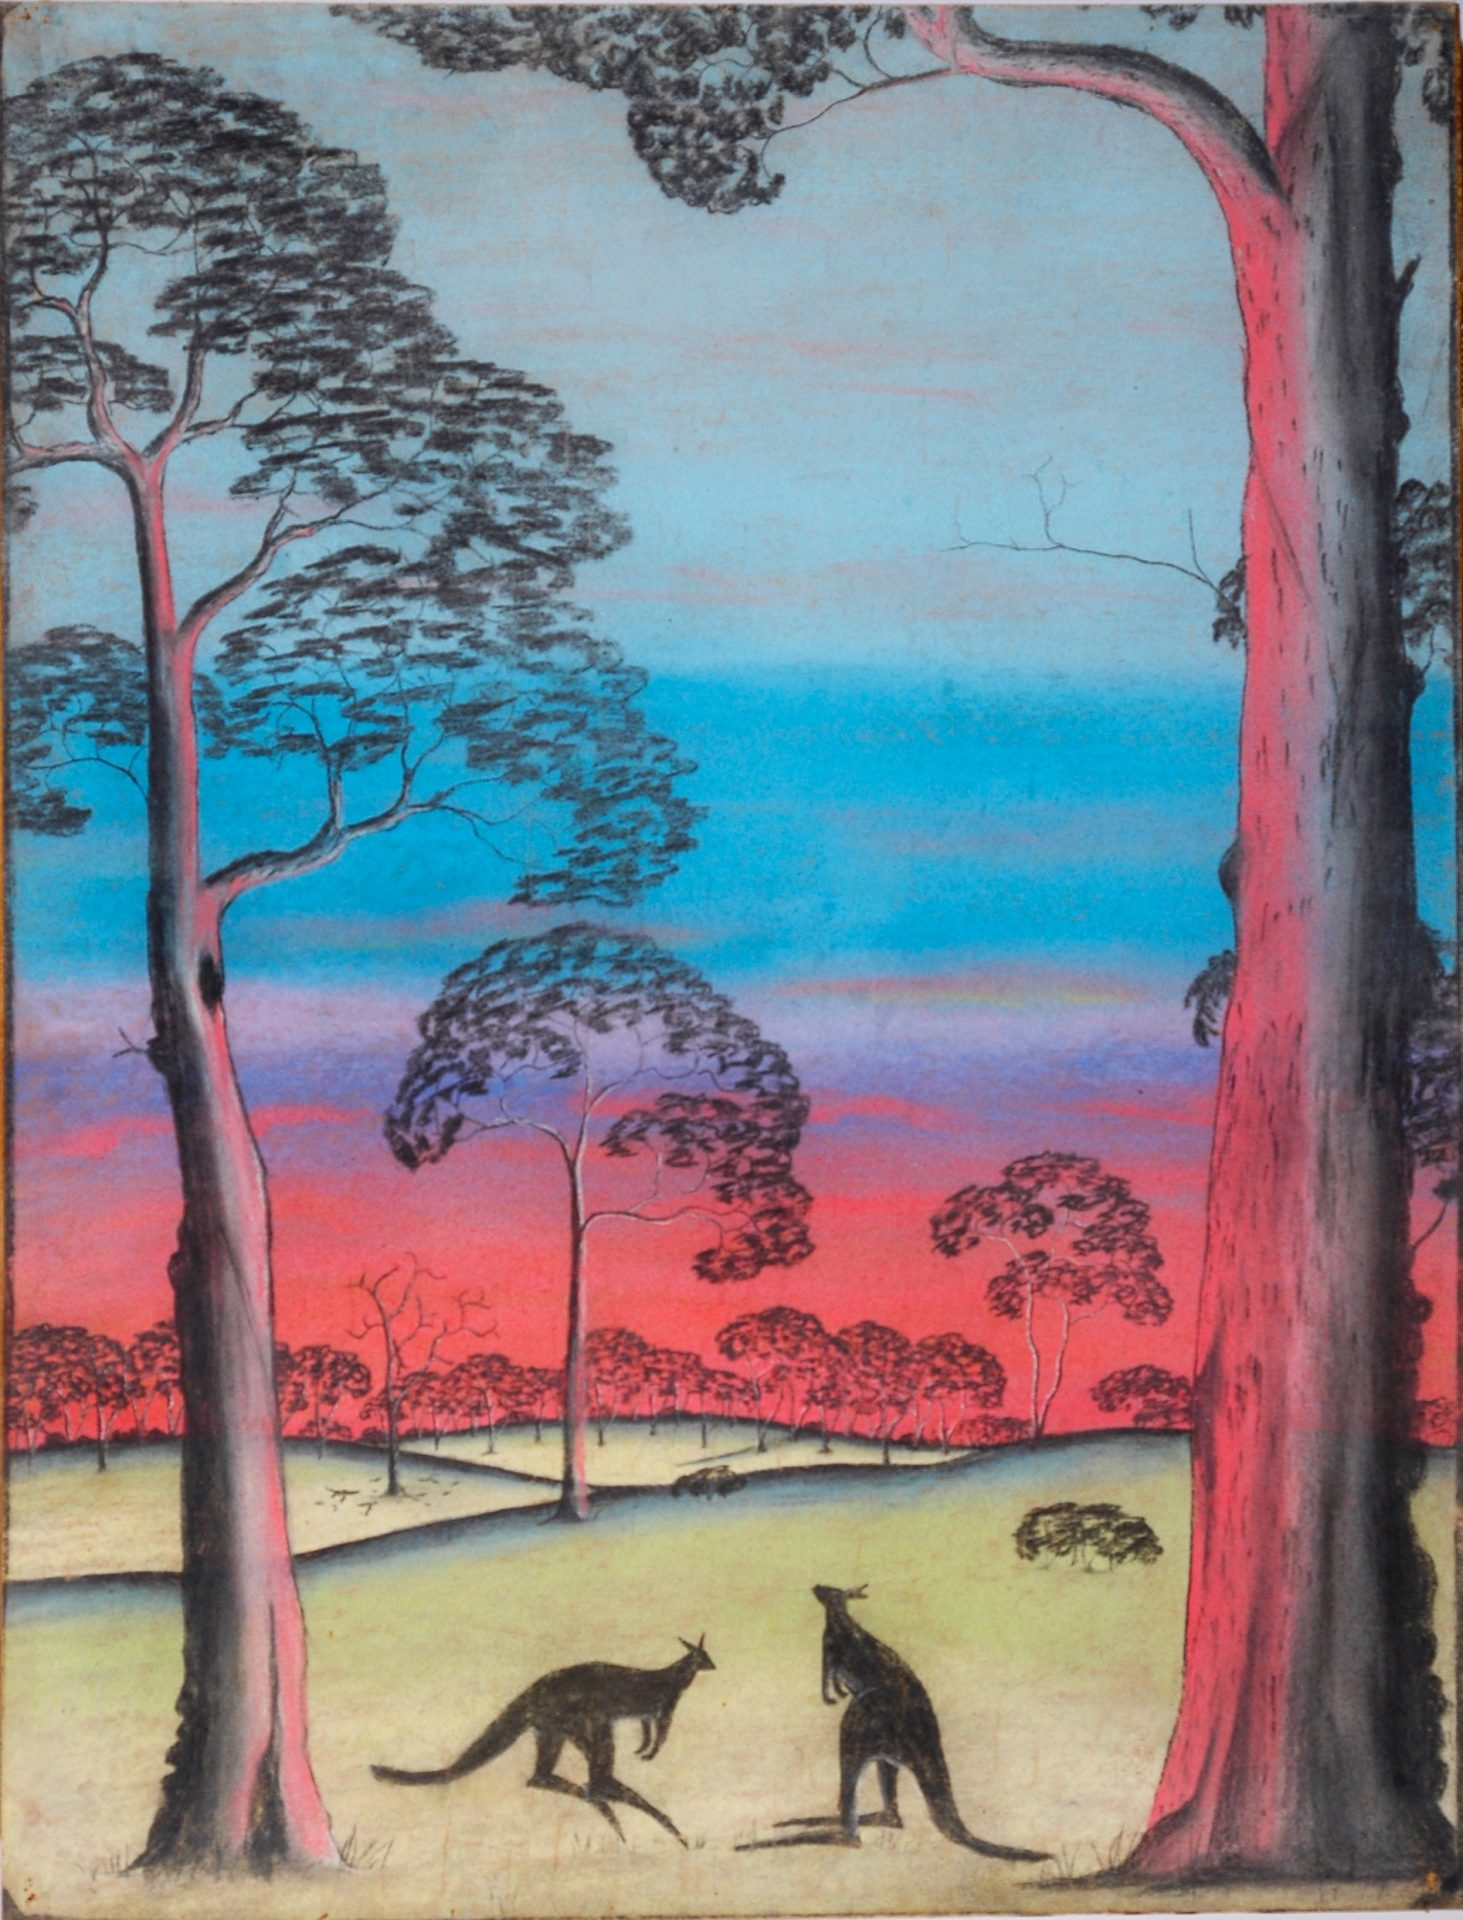 On the Alert by Barry Loo, pastel on paper, 76.2 x 58.7cm, c.1949. The Herbert Mayer Collection of Carrolup Artwork, John Curtin Gallery, Curtin University.